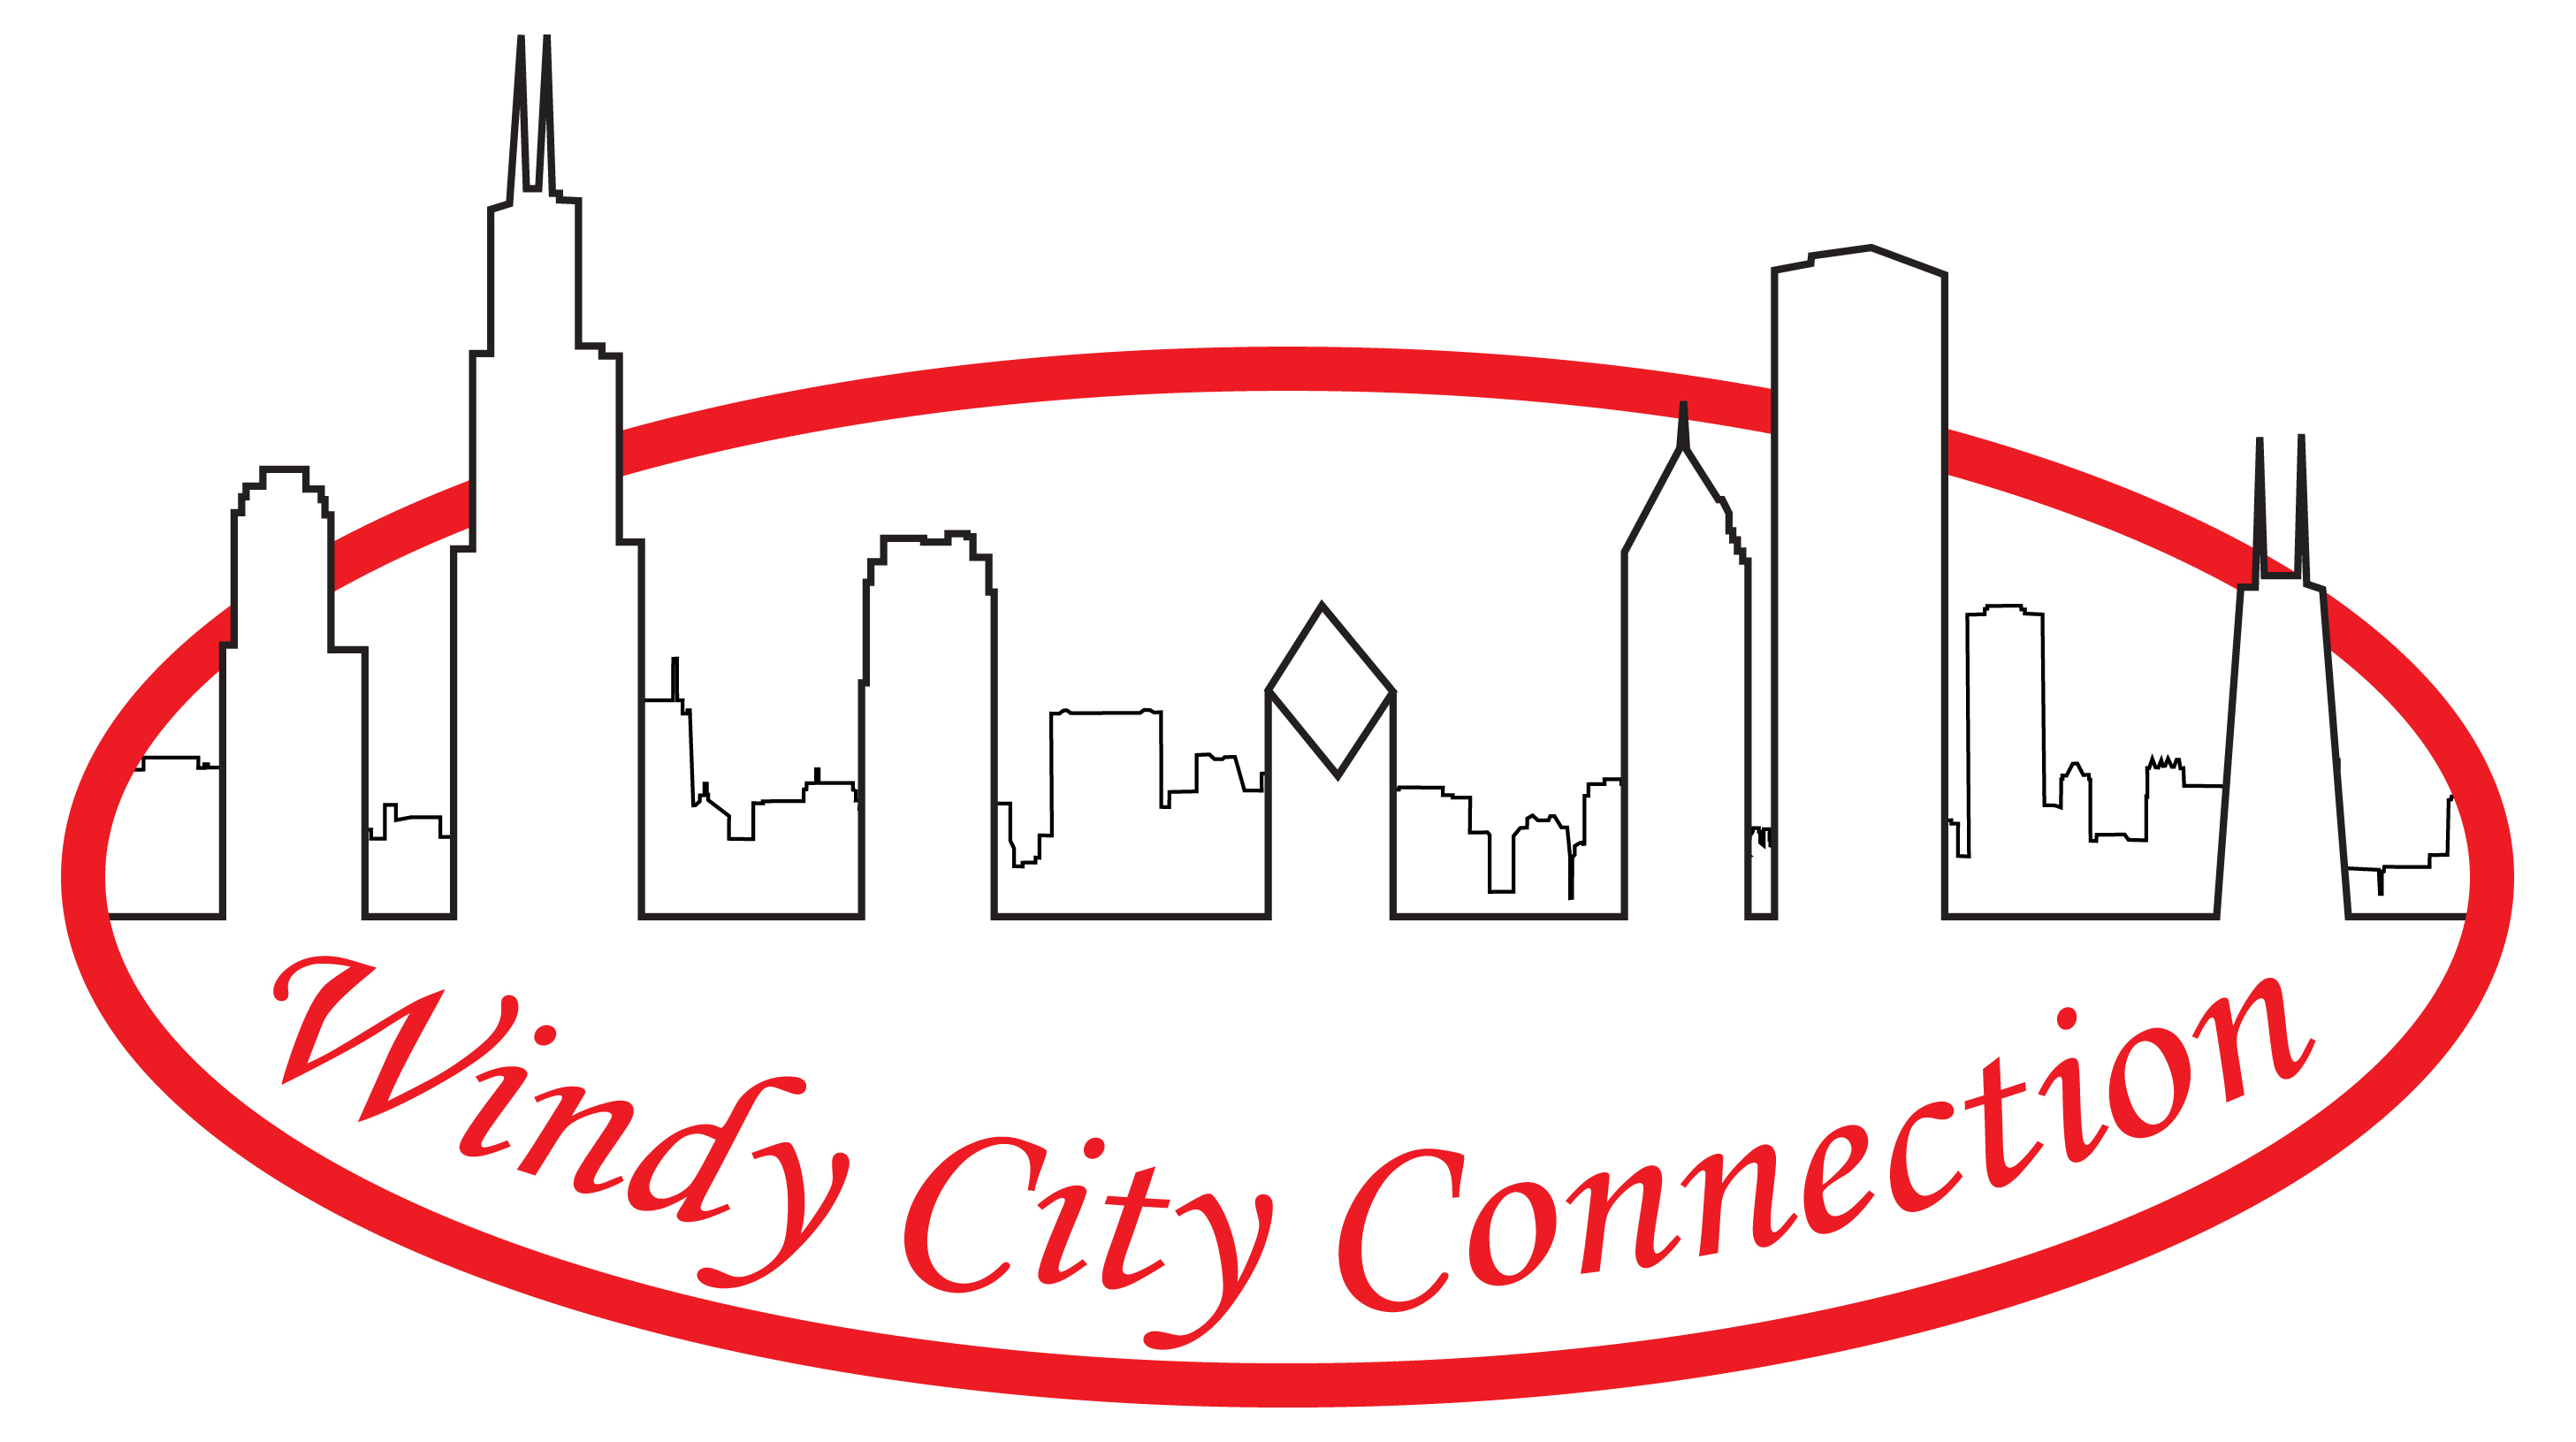 Windy City Connection